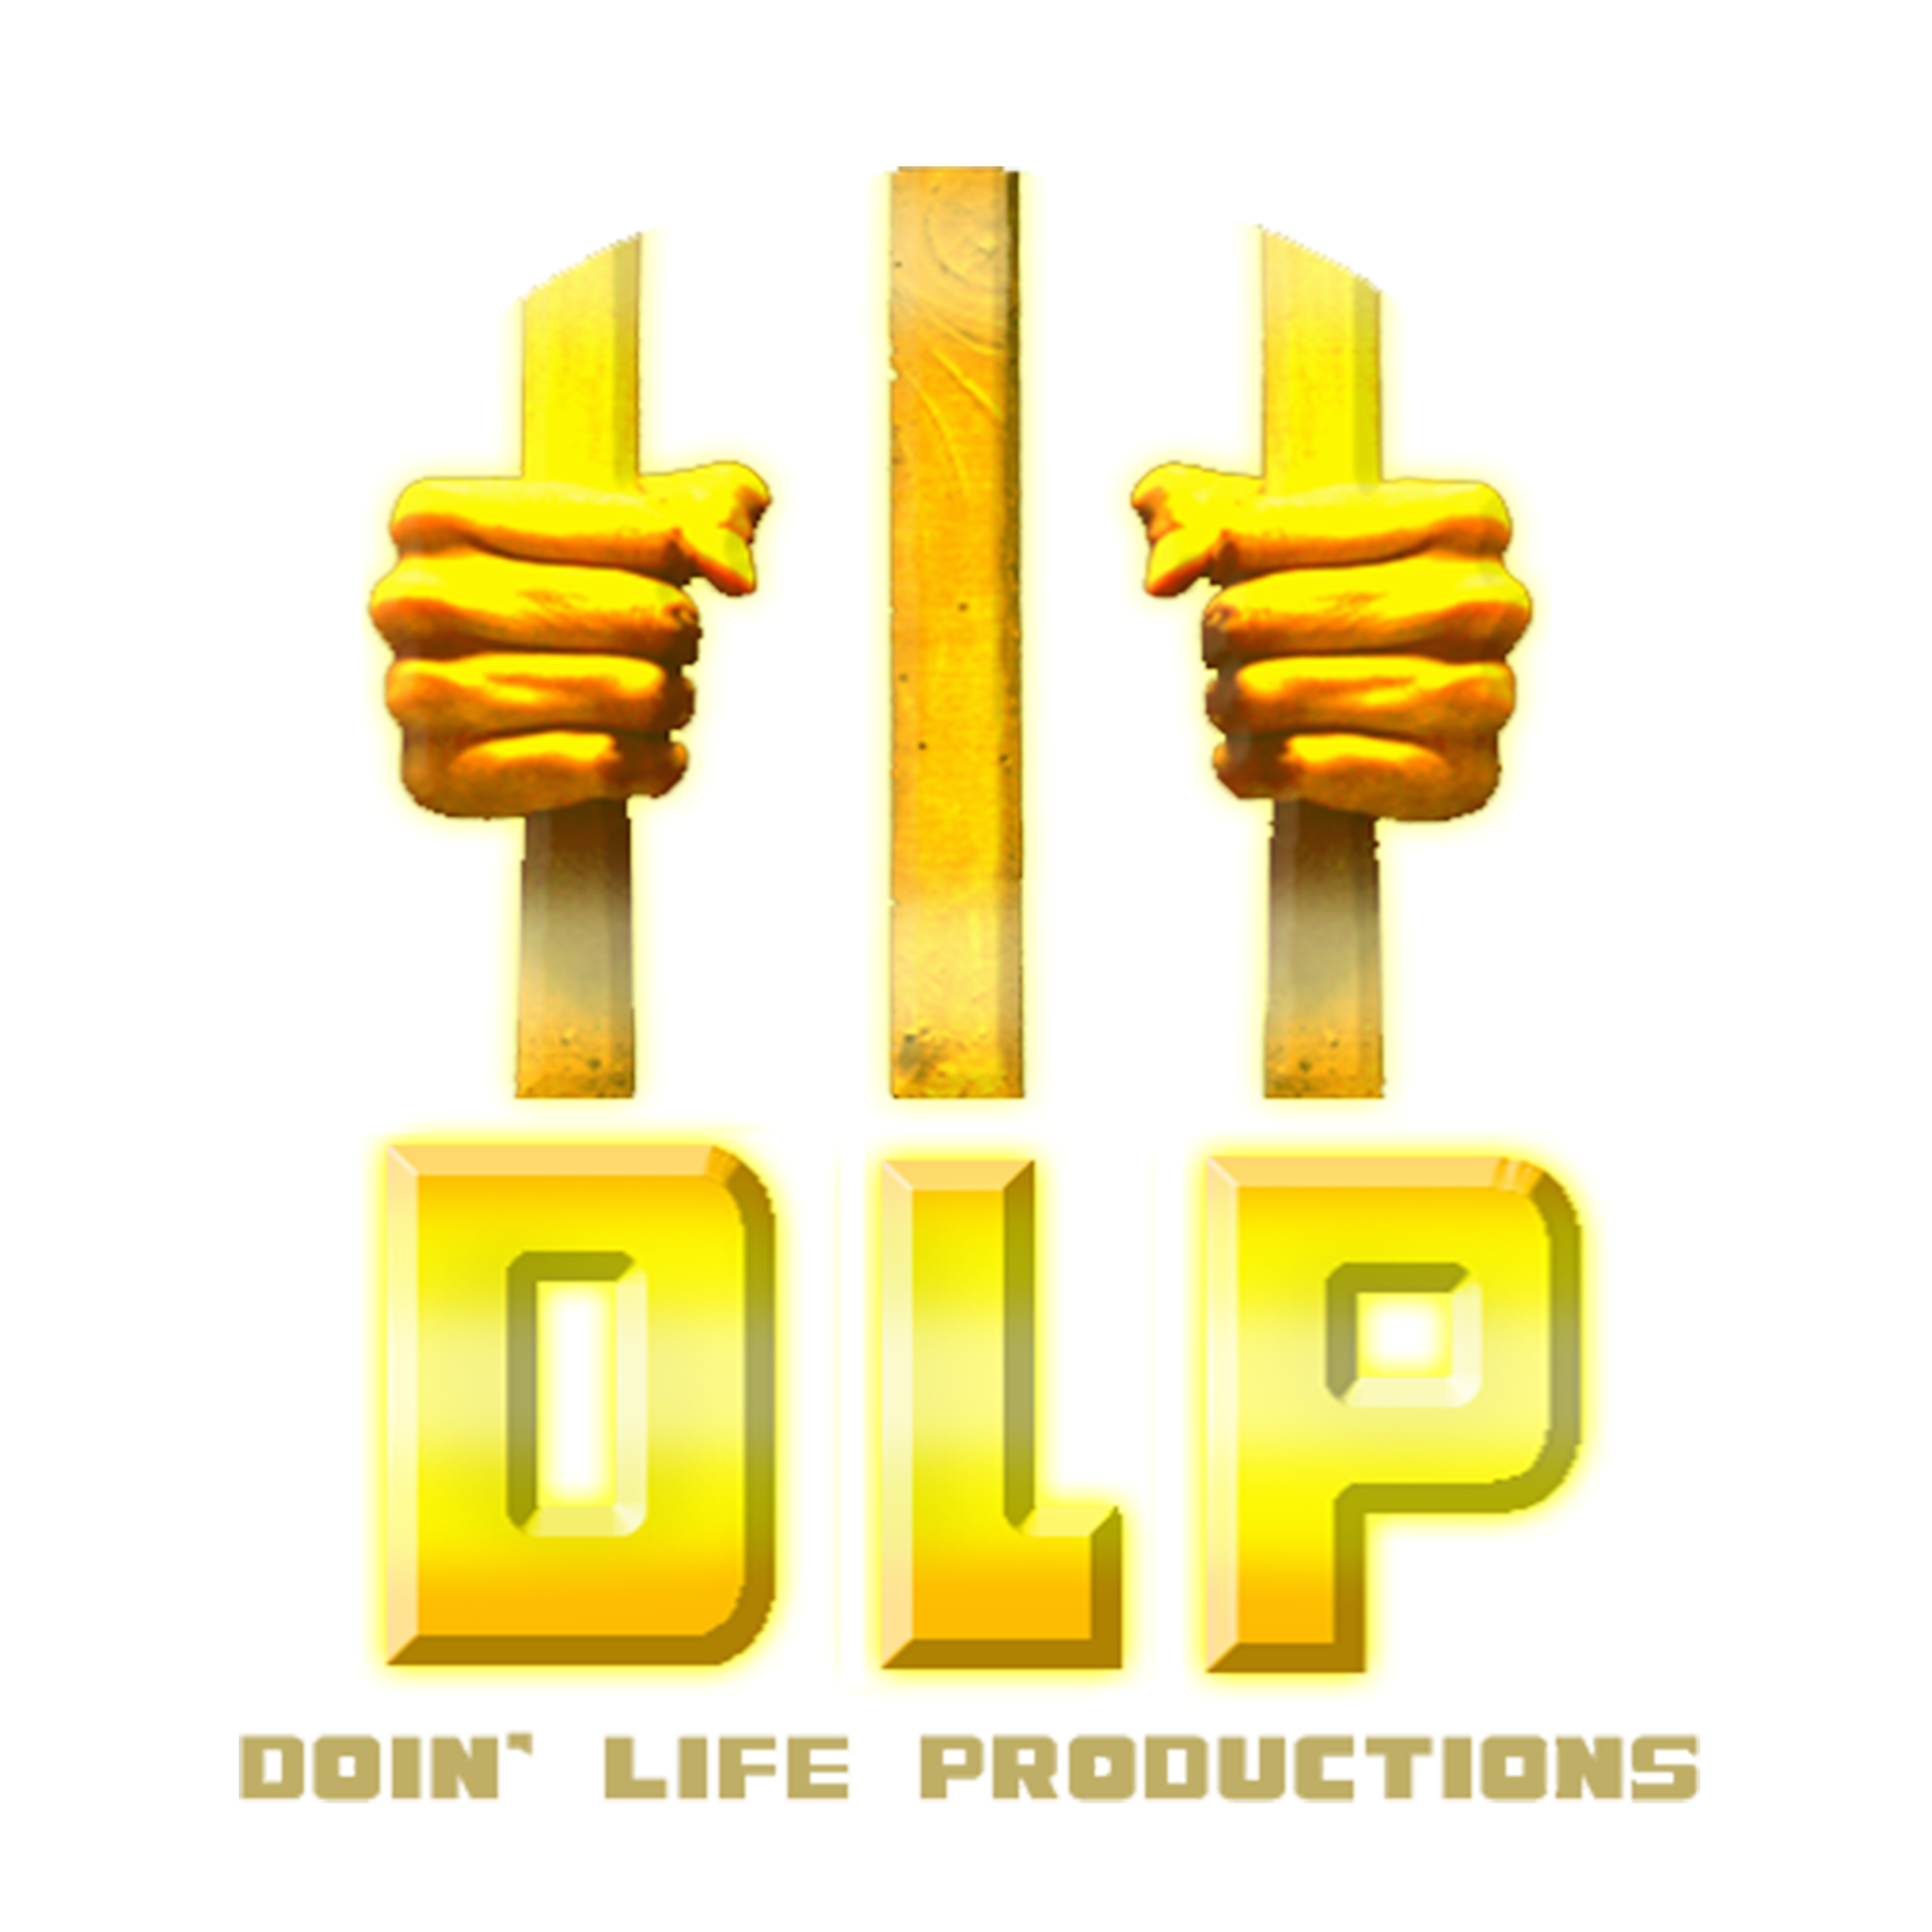 clear-dlp2.png